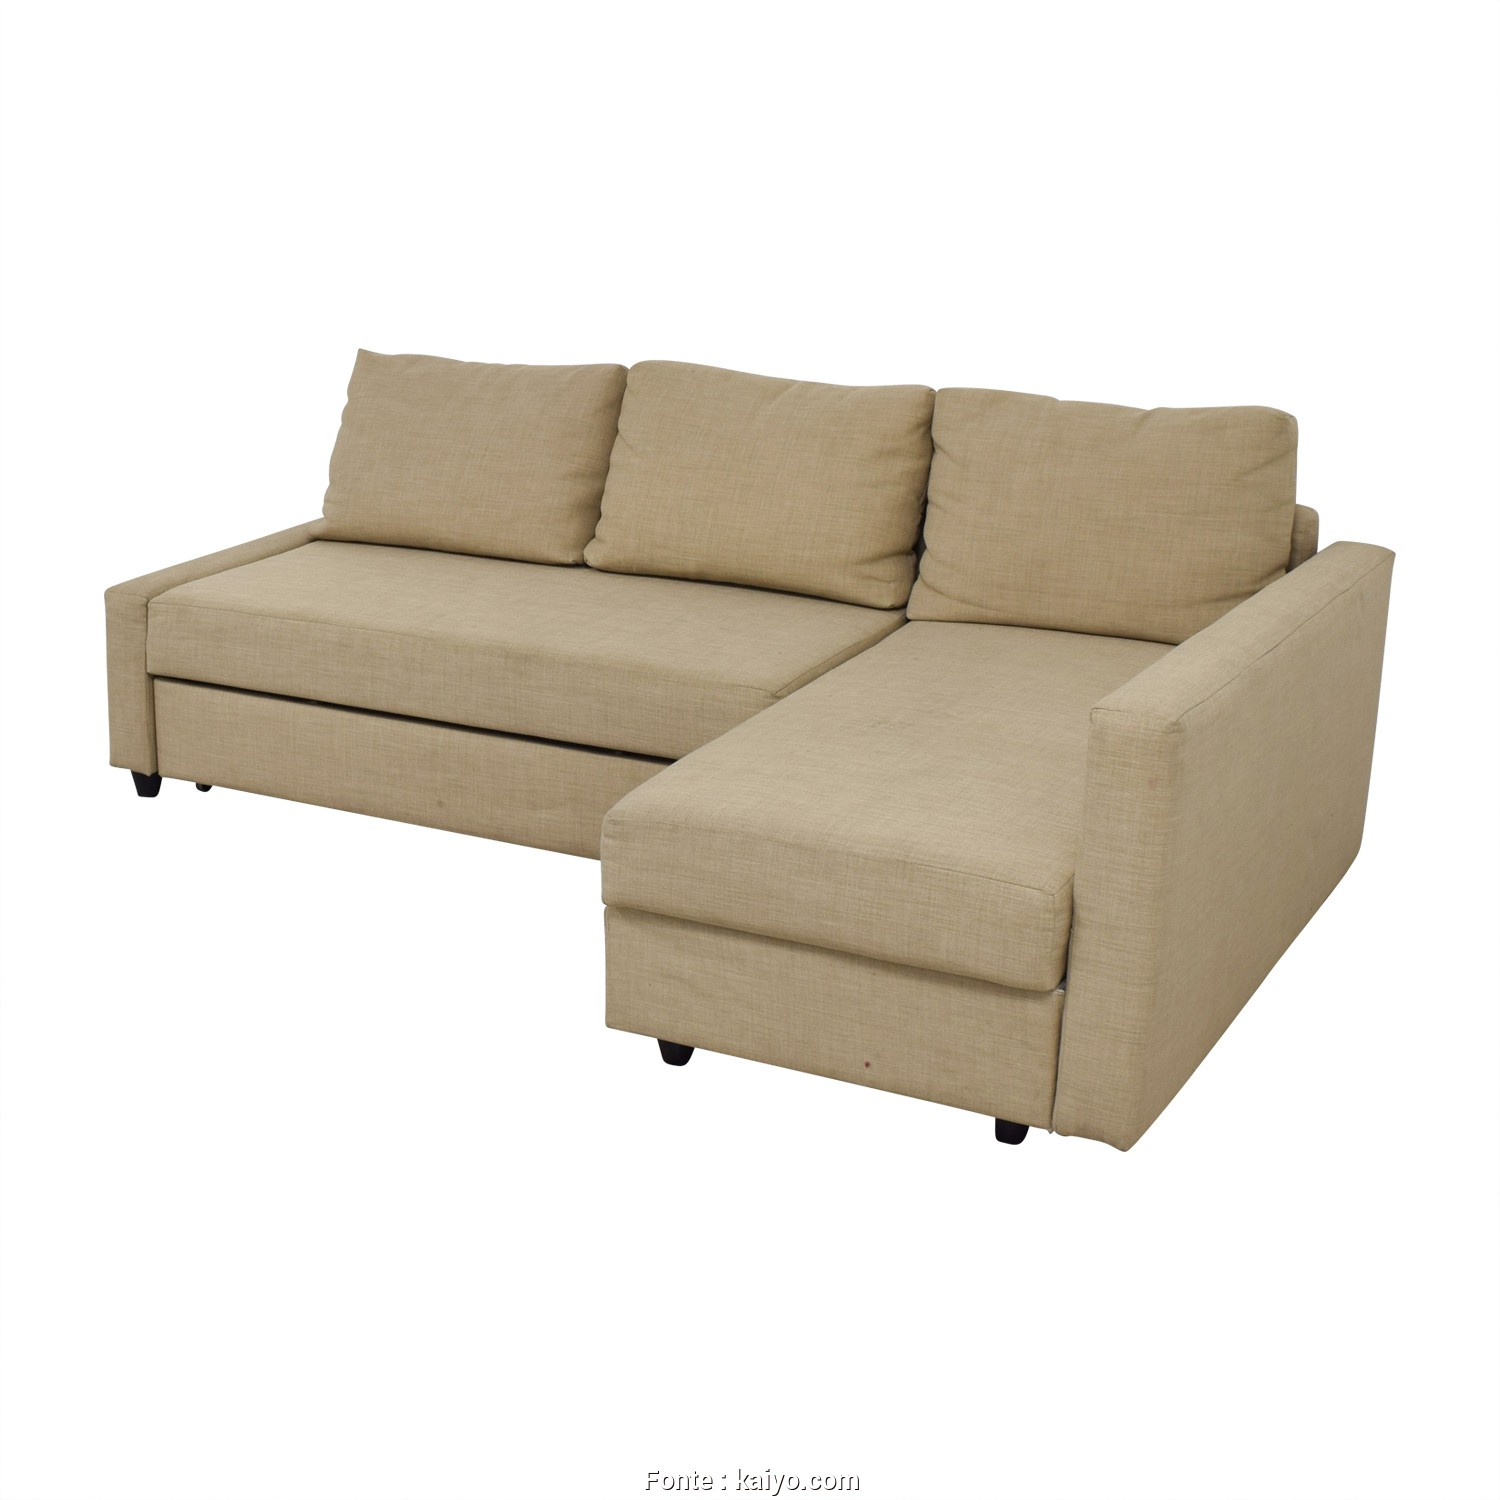 Divano Friheten Beige, Bello Shop IKEA Friheten Beige Sleeper Sectional IKEA Sectionals